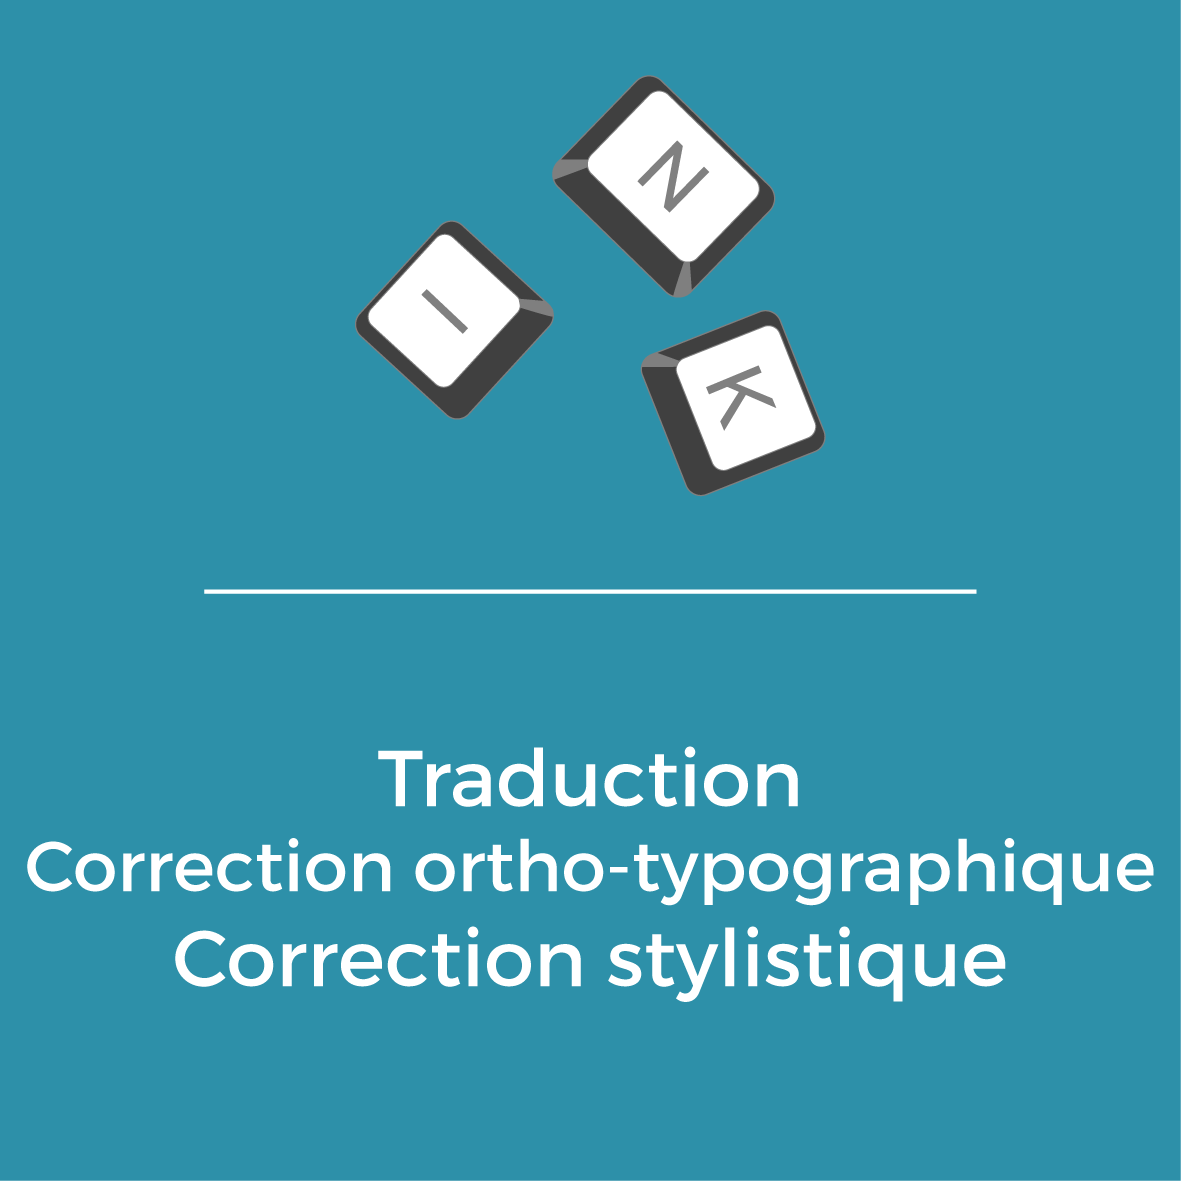 Services - Traduction - Correction ortho-typographique - Correction stylistique